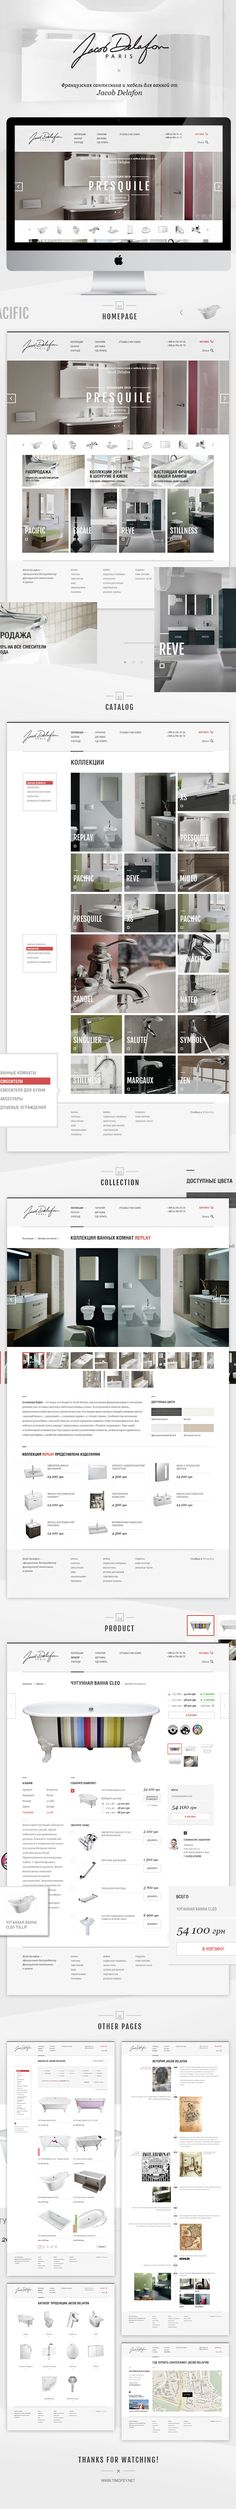 Jacob Delafon on Behance